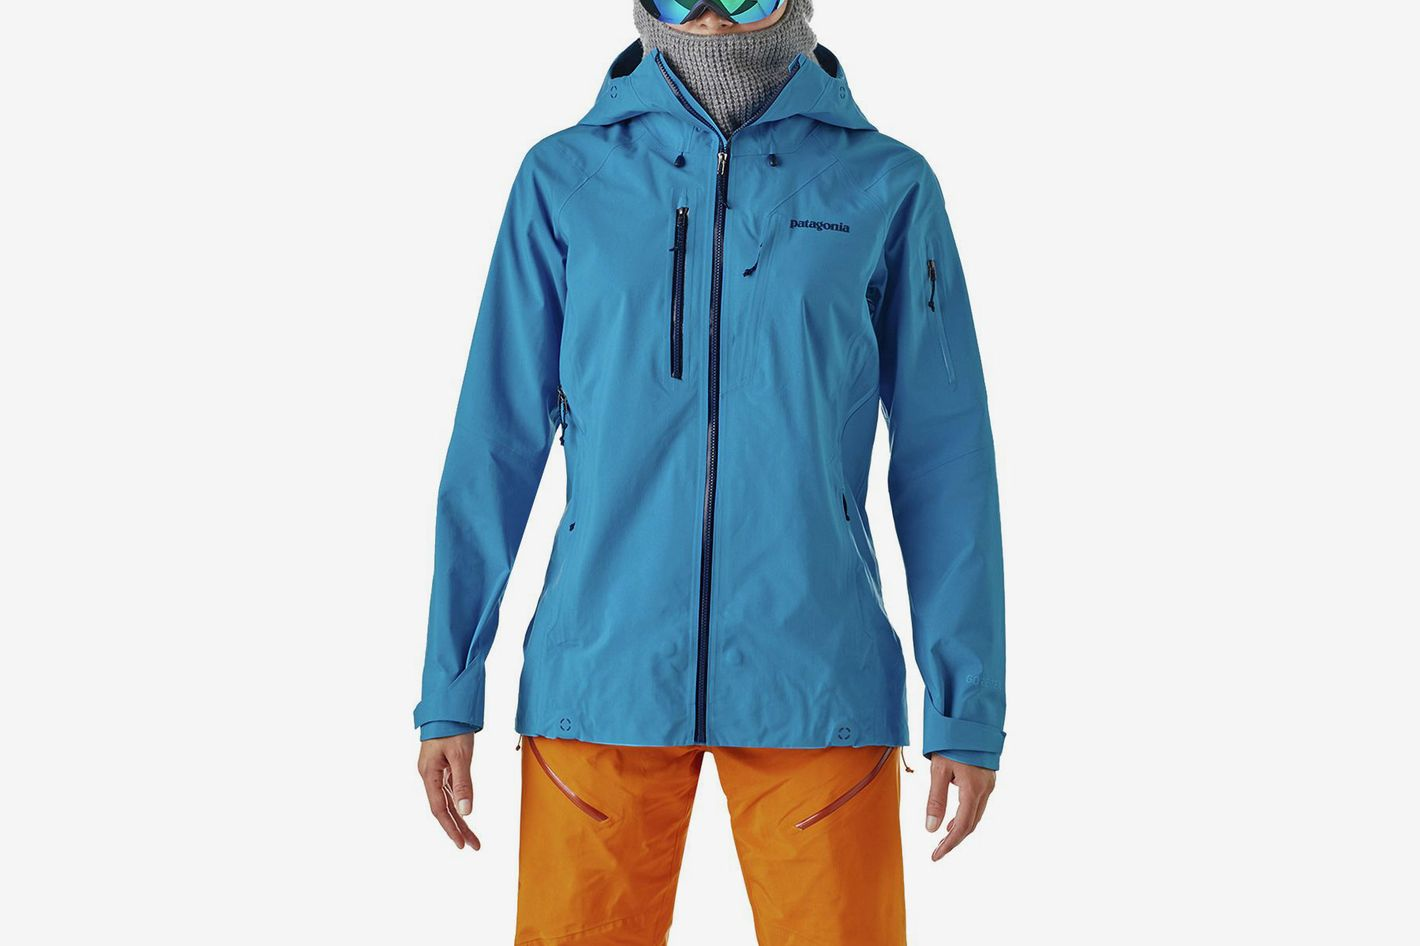 Patagonia Powslayer Jacket (Women's)